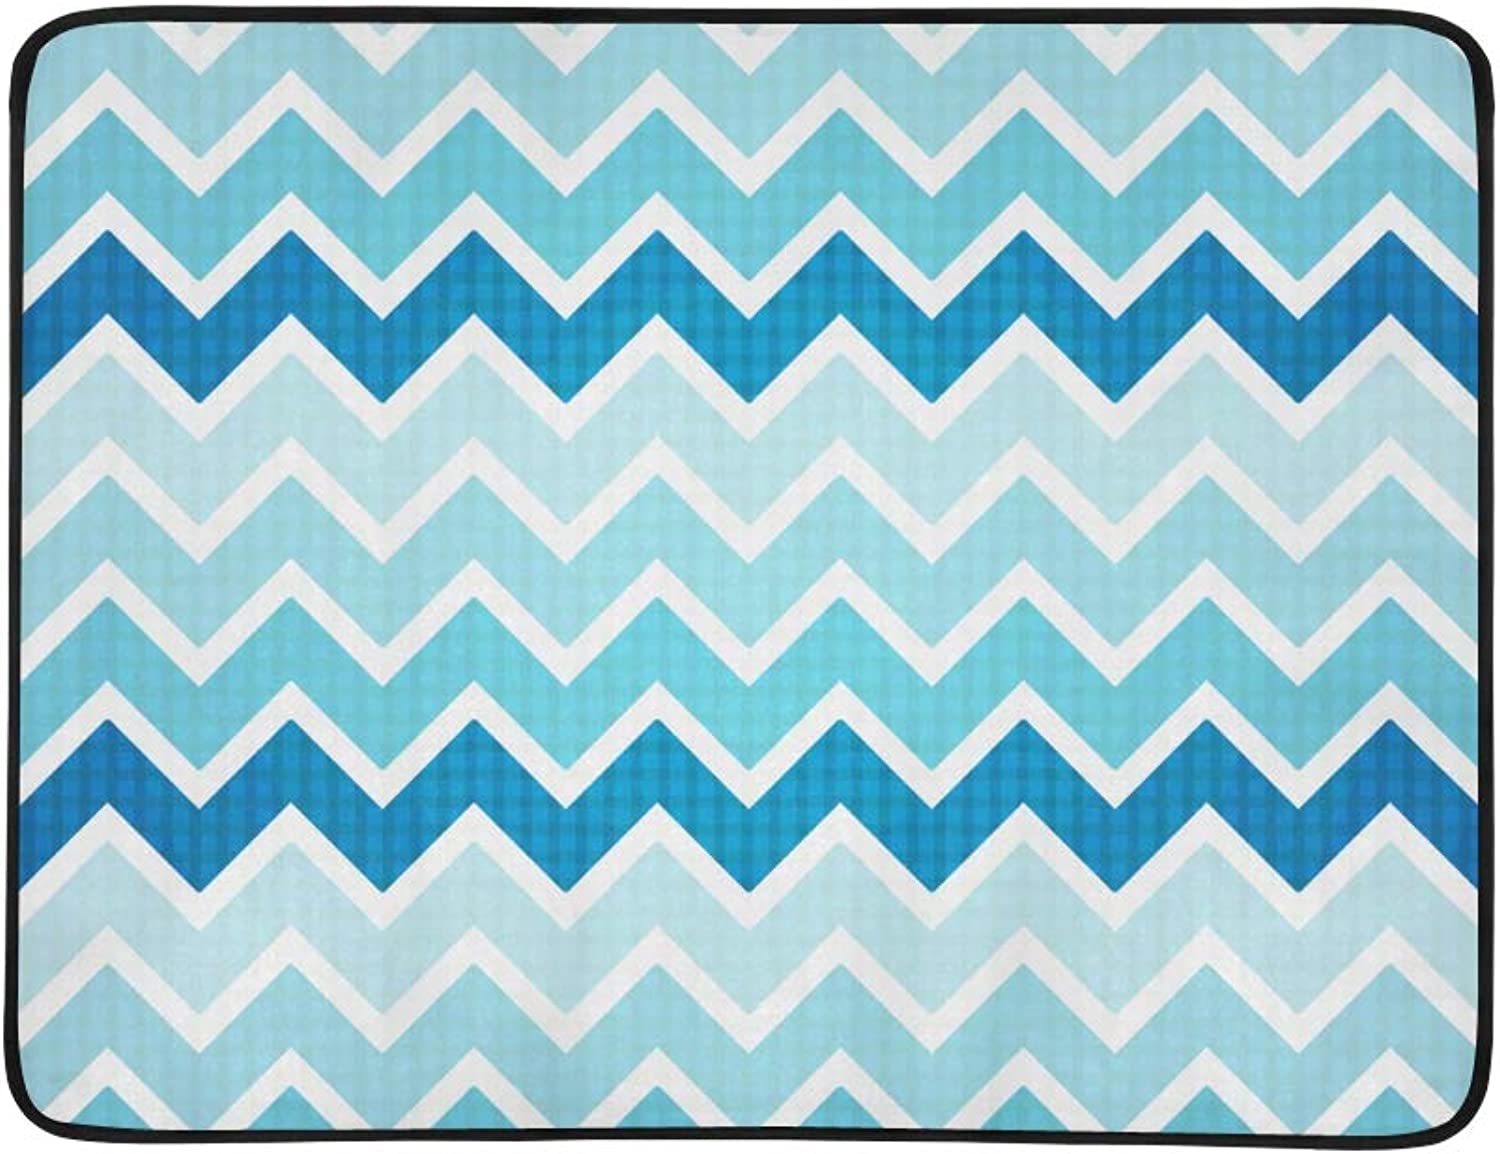 Zigzag Geometric Simple Summer color Pattern Portable and Foldable Blanket Mat 60x78 Inch Handy Mat for Camping Picnic Beach Indoor Outdoor Travel